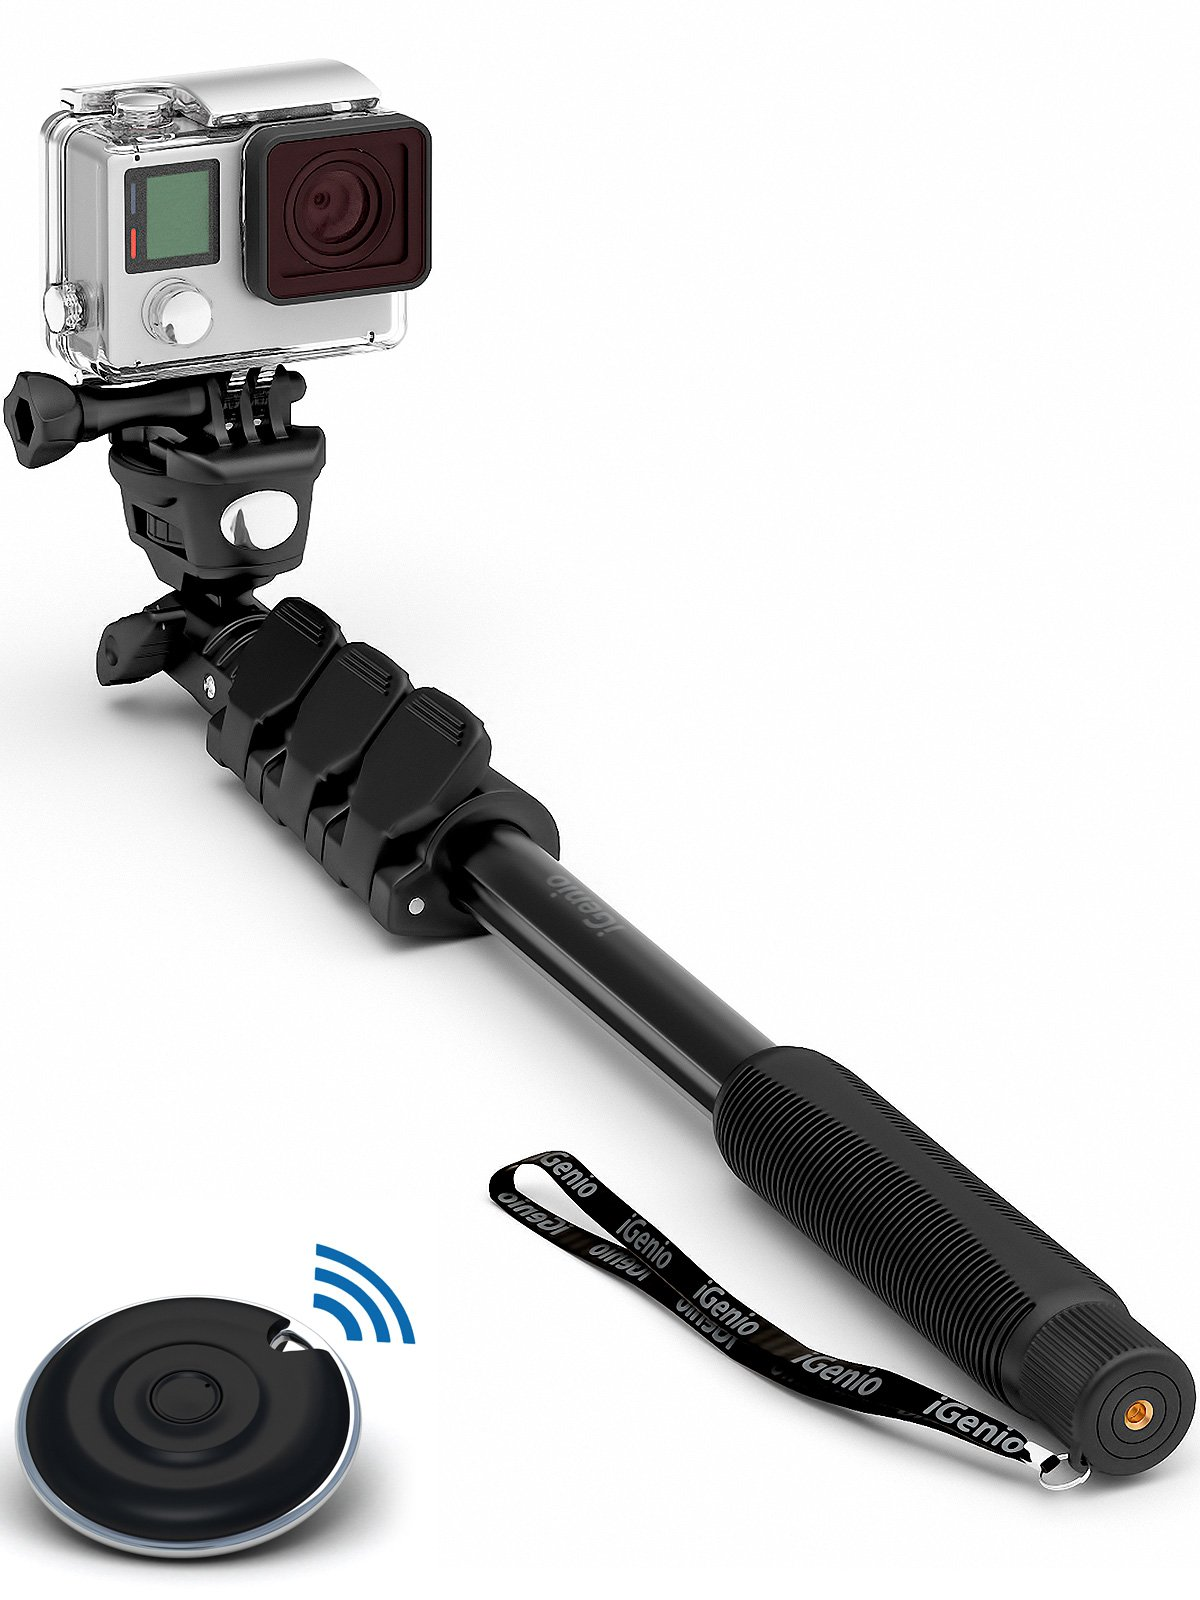 Professional 10-In-1 Monopod / Selfie Stick For GoPro Hero, iPhone, Samsung Galaxy, Digital Cameras With Bluetooth Remote Shutter (Cellphones Only) by Selfie World (Image #1)